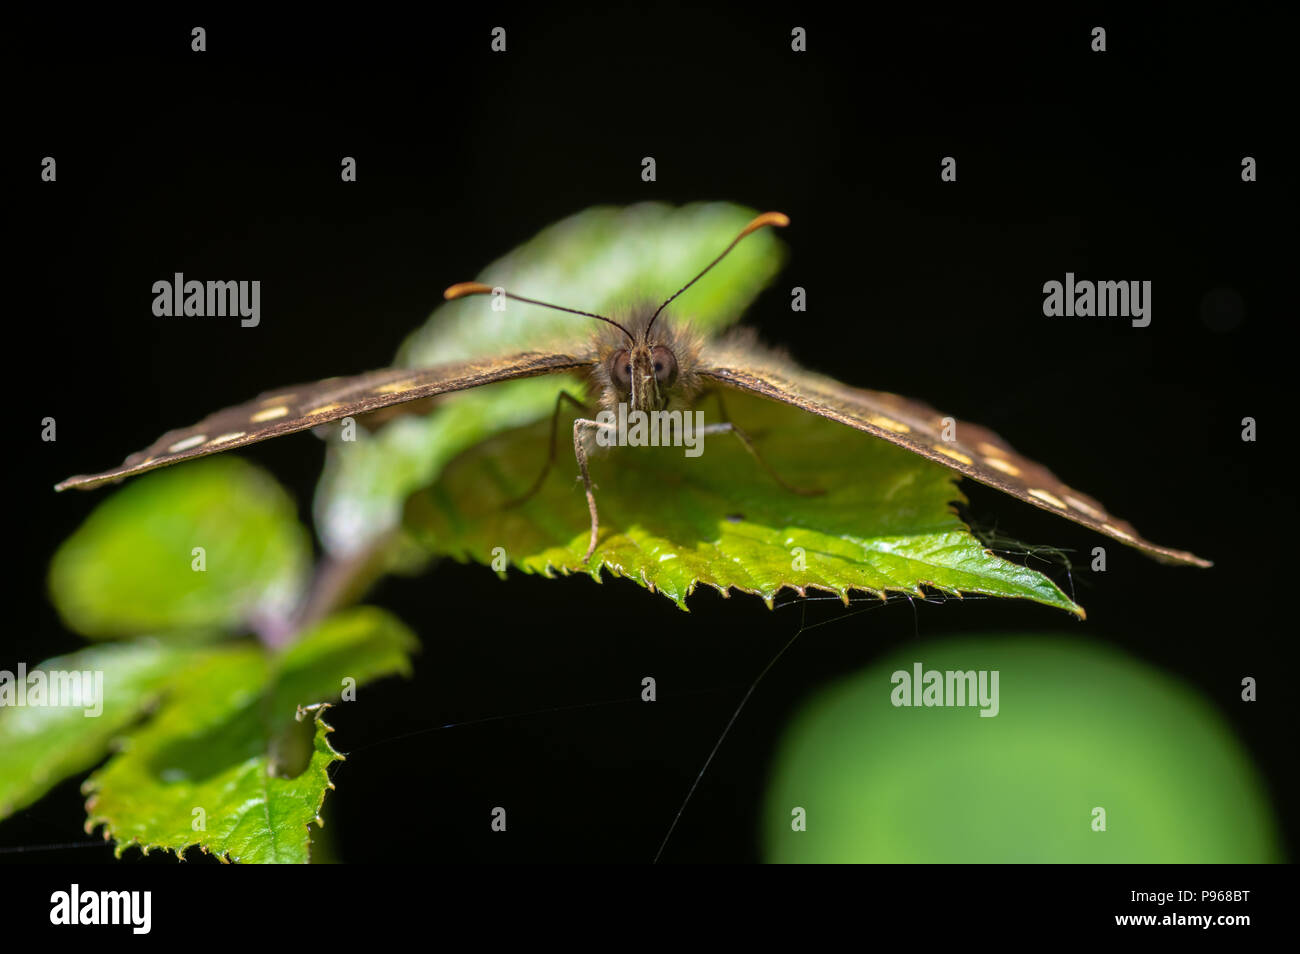 Speckled wood (Pararge aegeria) head on. Woodland butterfly in the family Nymphalidae at rest on bramble - Stock Image